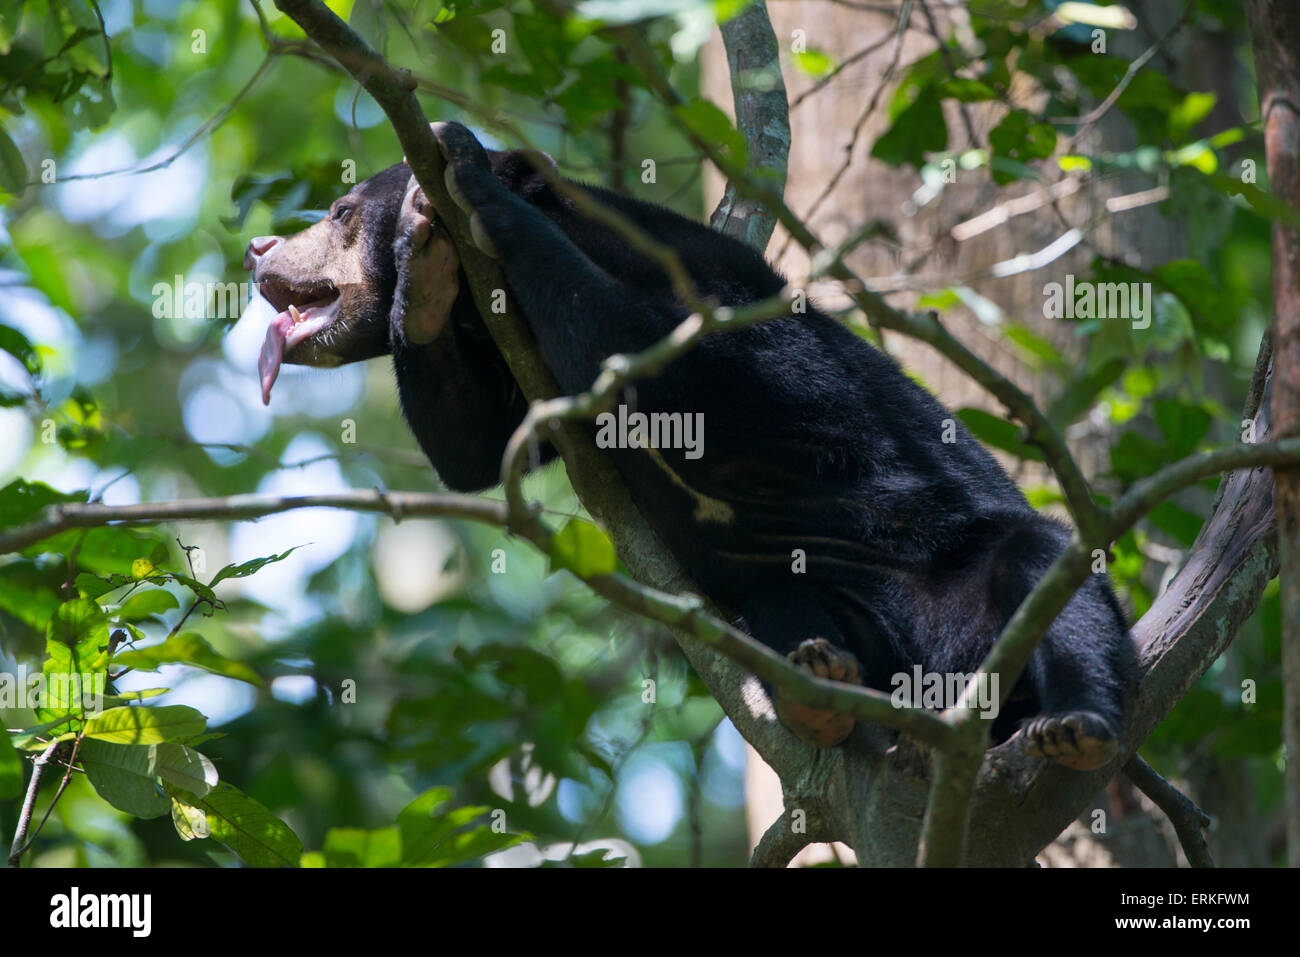 Bornean Sun Bear, Helarctos malayanus, resting in the branches of a tree at the Bornean Sun Bear Conservation Centre, - Stock Image